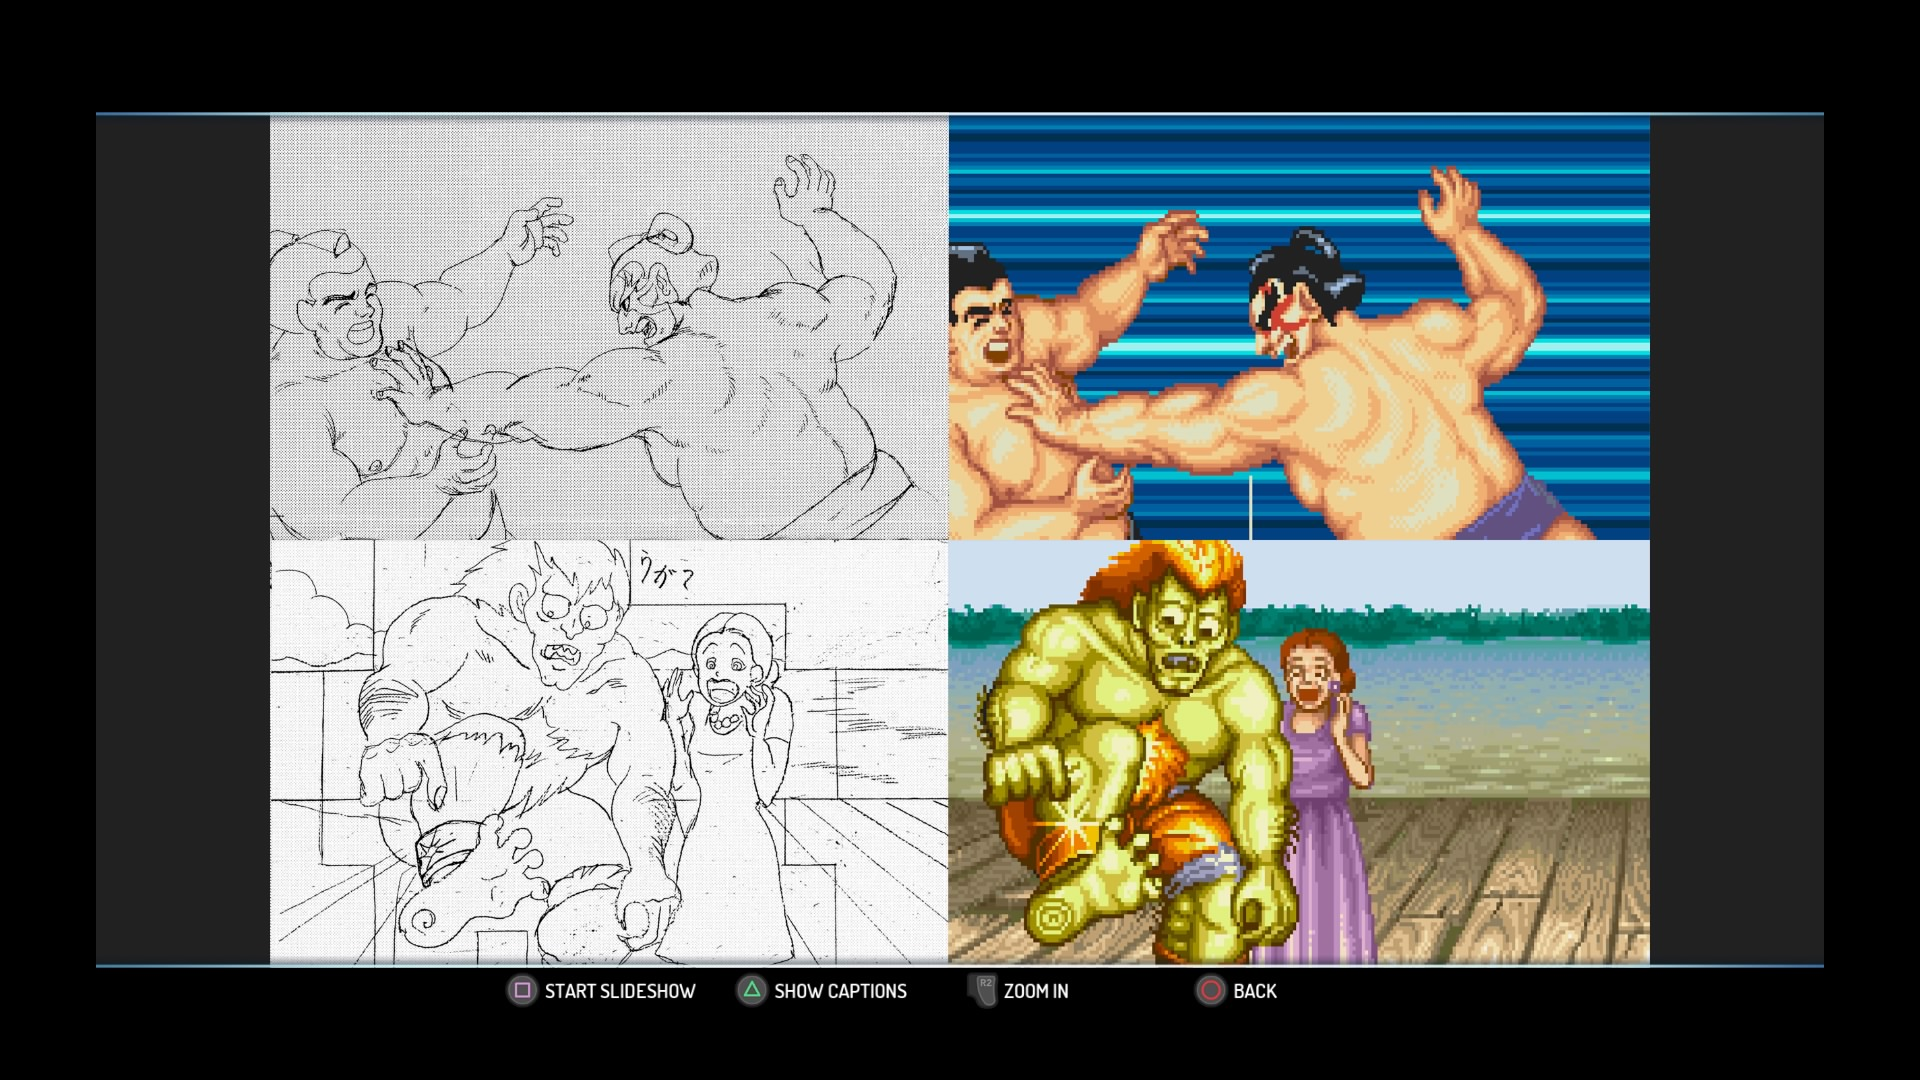 SF30_SFII_Ending_Layout